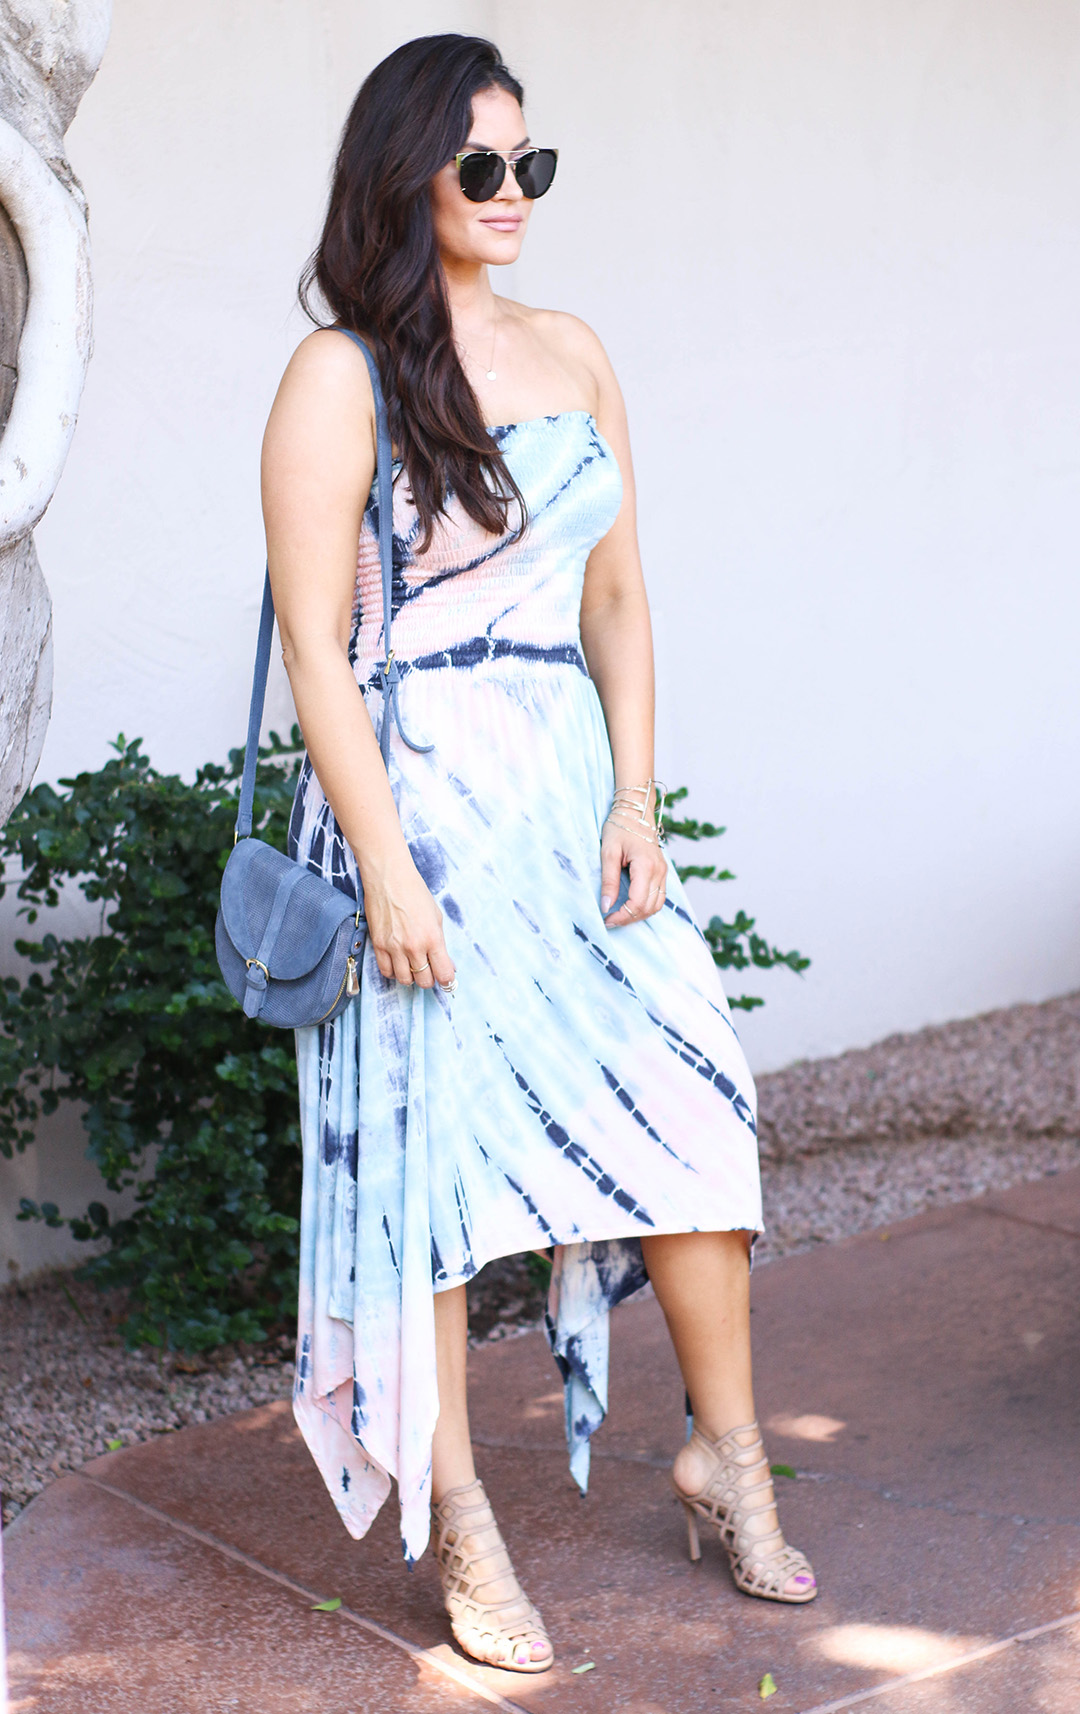 Street style tip of the day: Sun dressed